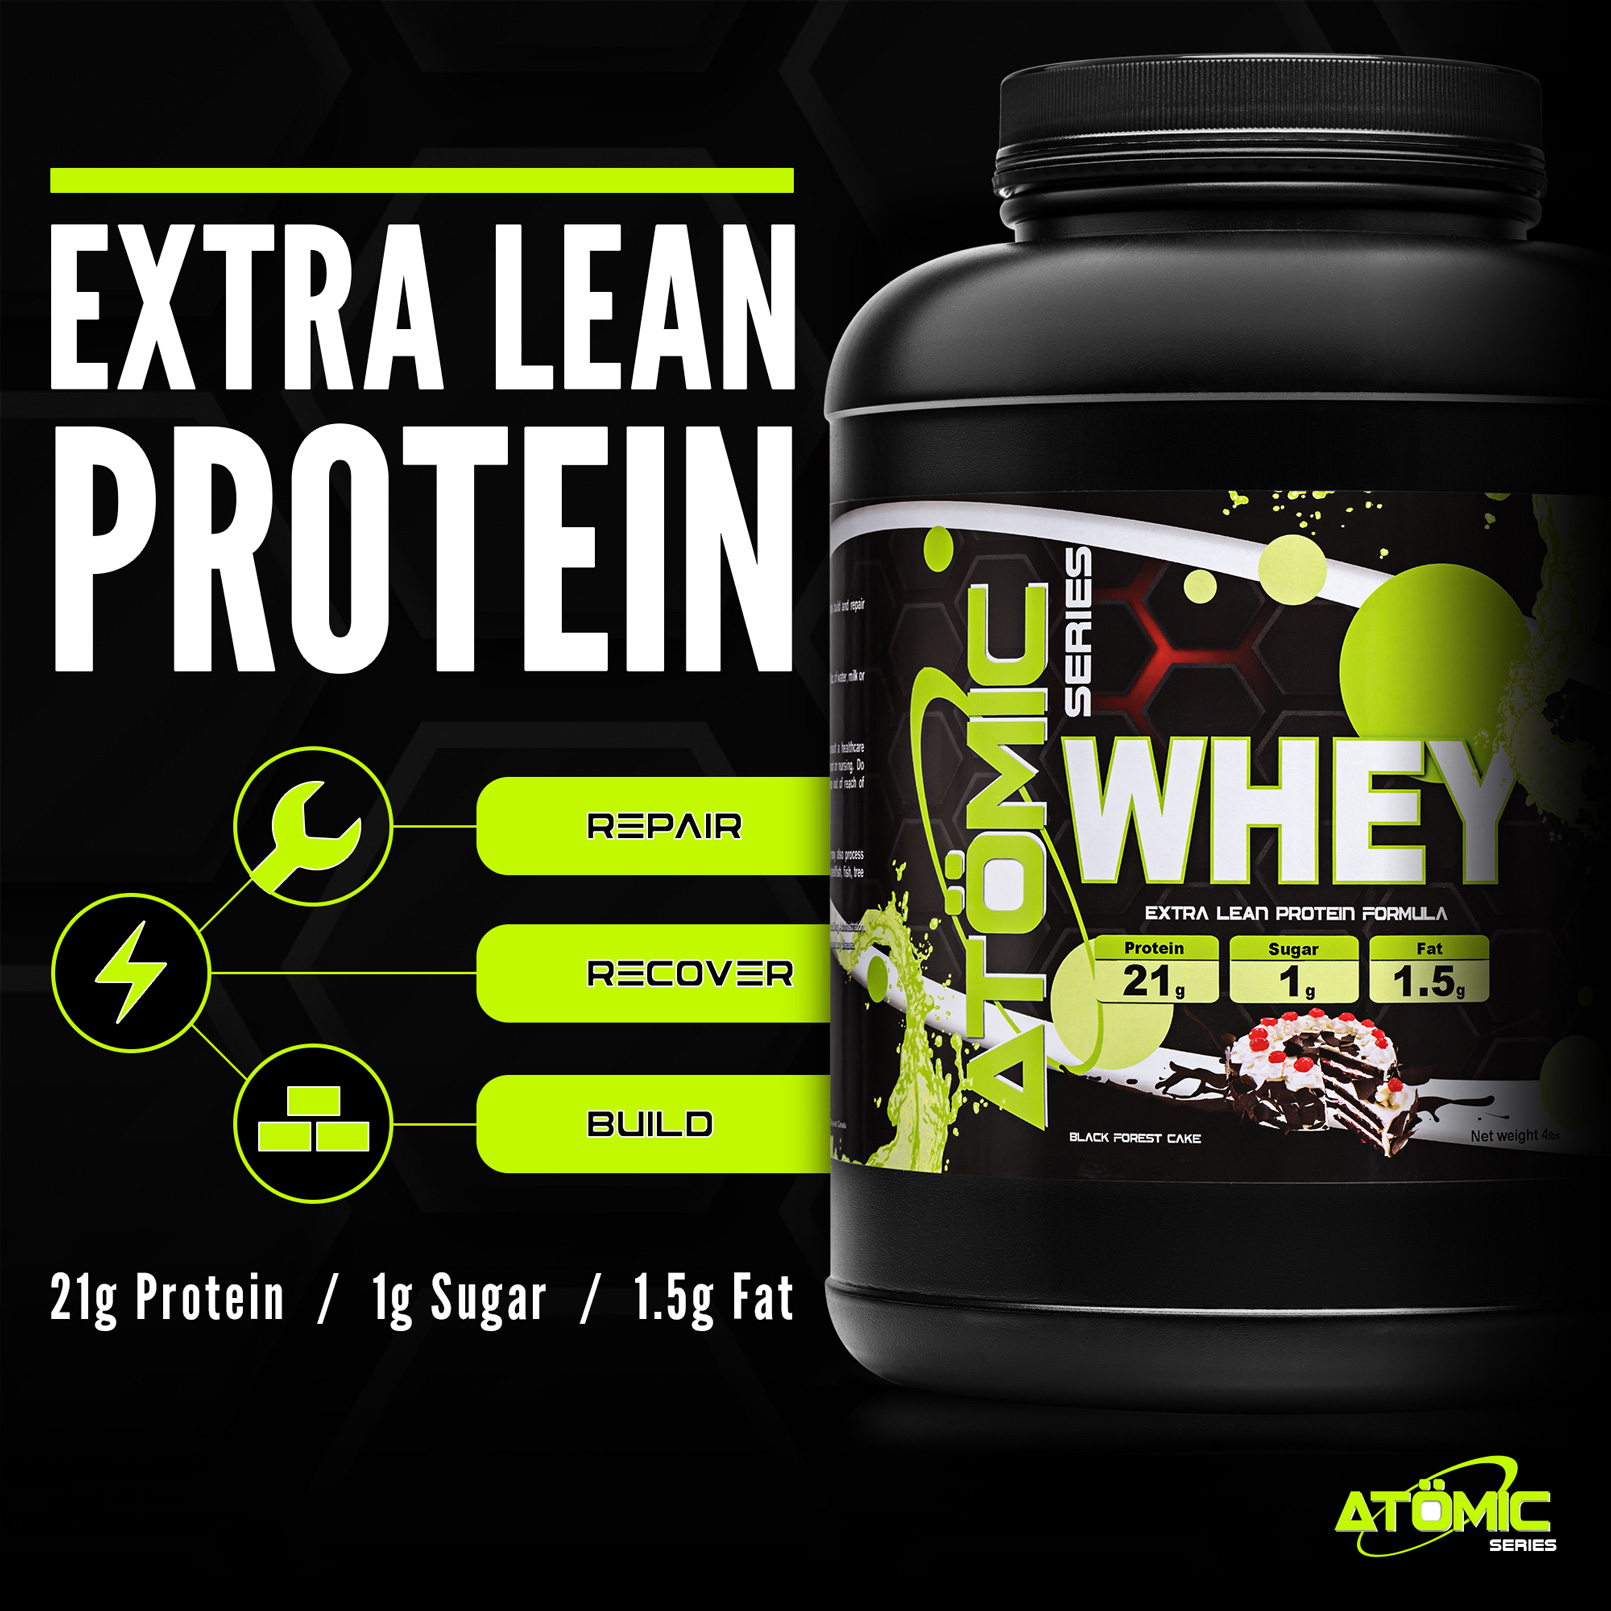 WHEY Infographic - Extra Lean Protein